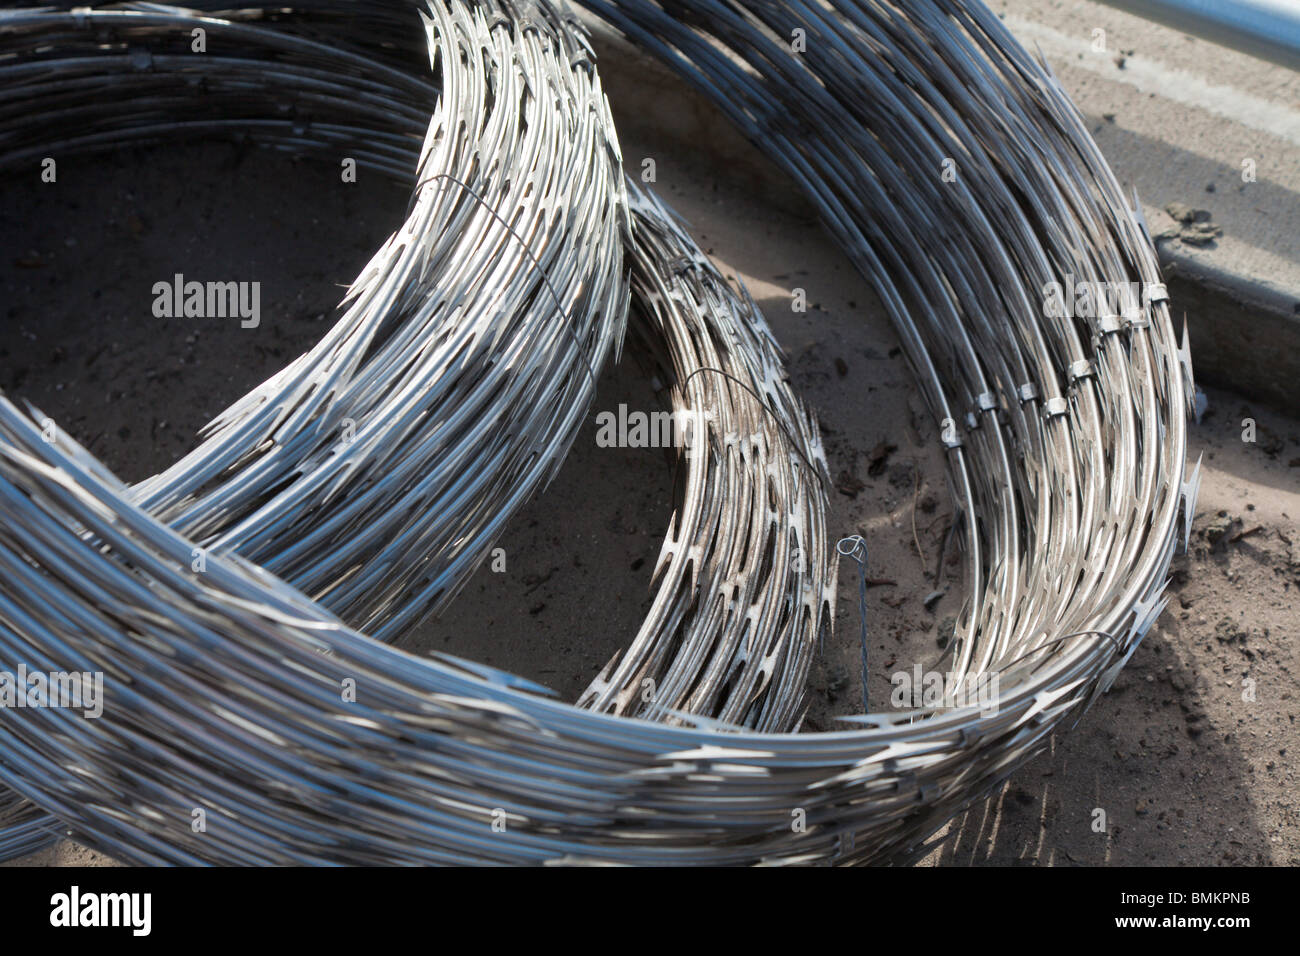 Bundled rolls of stainless steel razor wire spirals for security ...